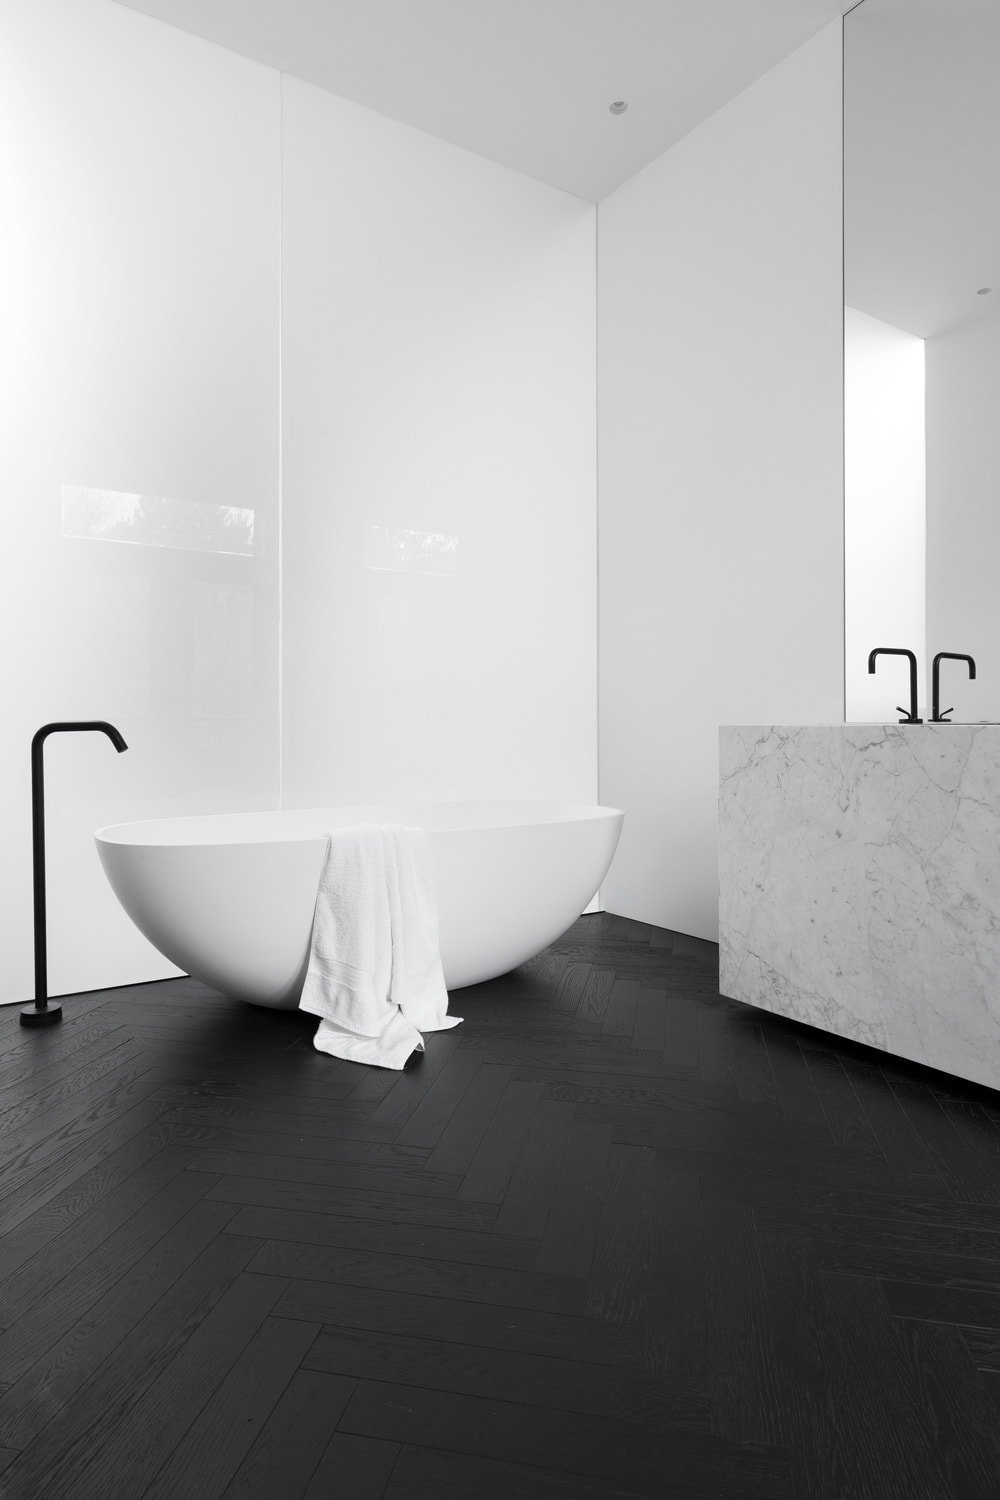 The primary bathroom has a black flooring that is contrasted by the white porcelain freestanding bathtub that blends with the white wall and white marble vanity.